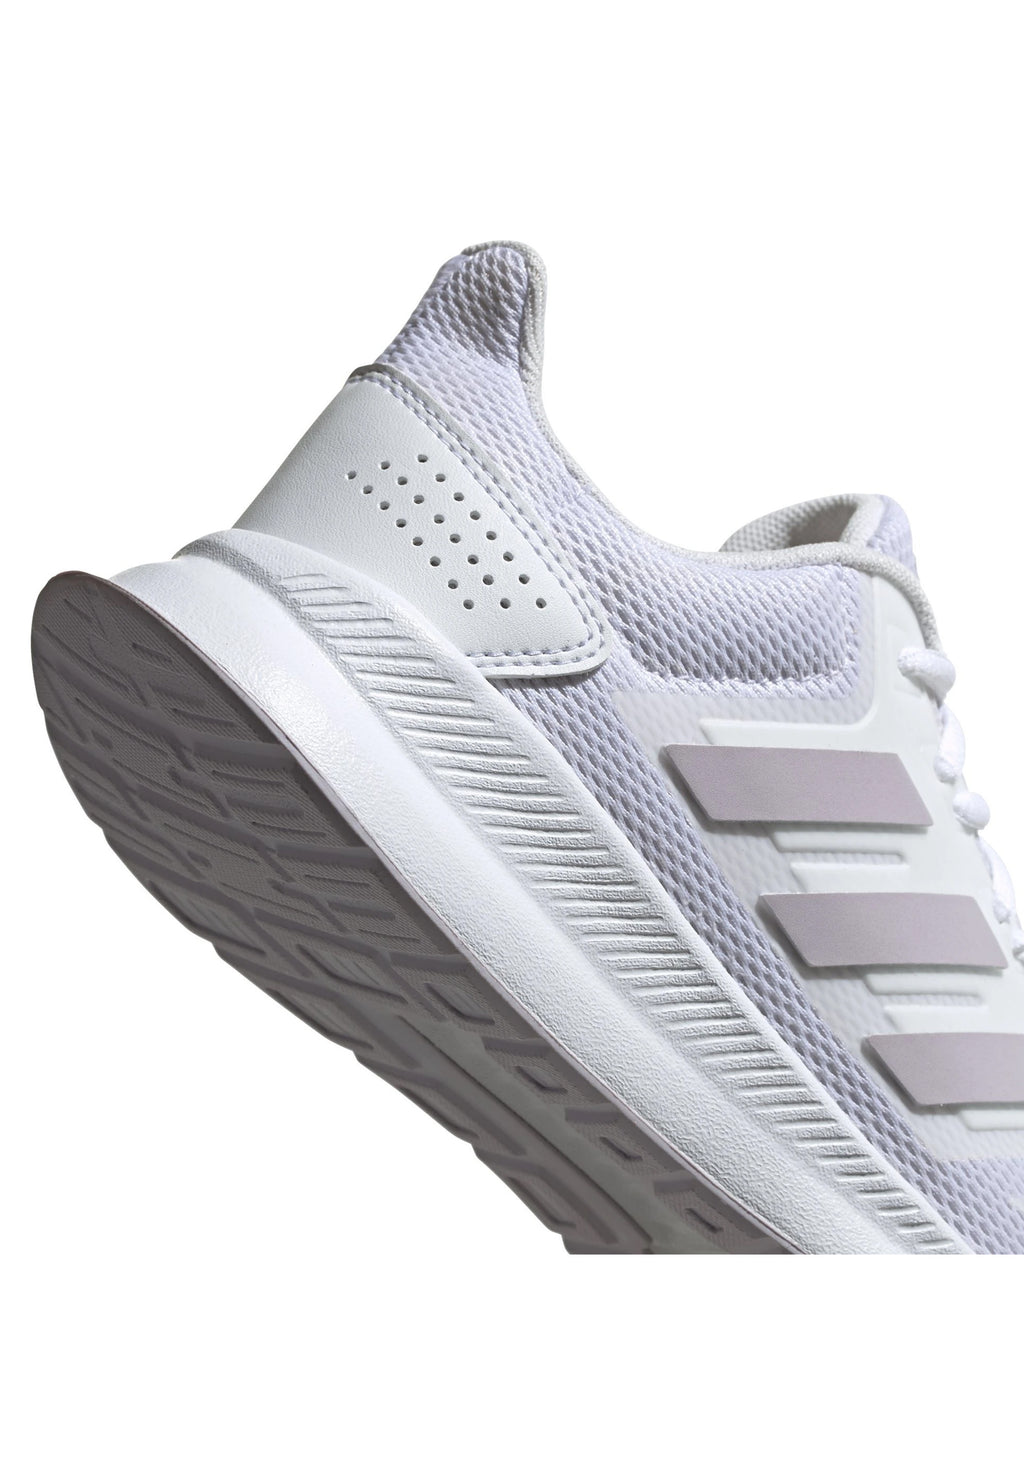 Ladies Adidas trainers size 3 in LS27 Morley for £10.00 for